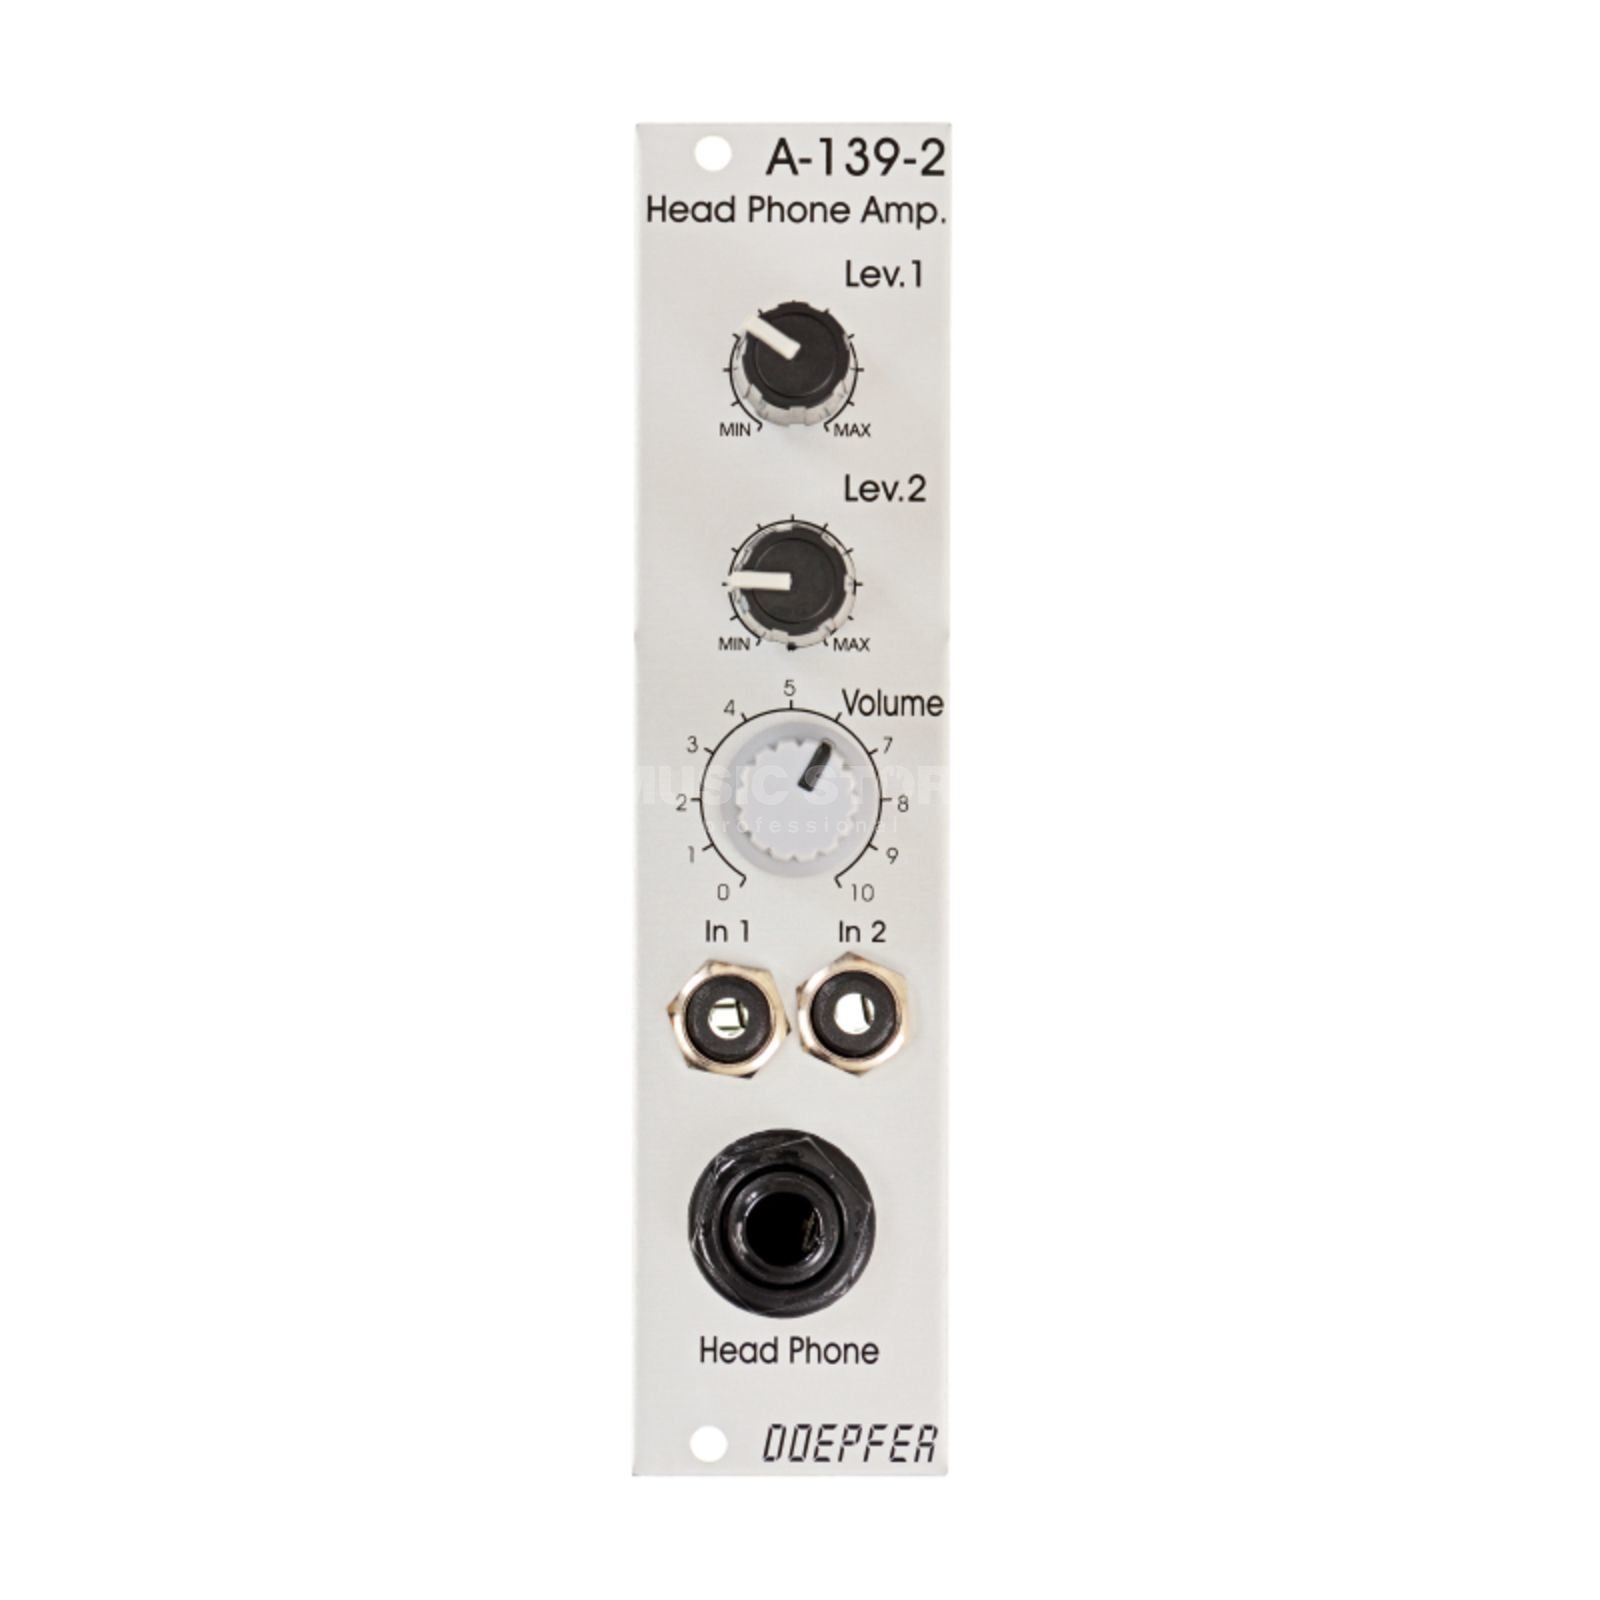 Doepfer A-139-2 Headphone Amplifier II Zdjęcie produktu